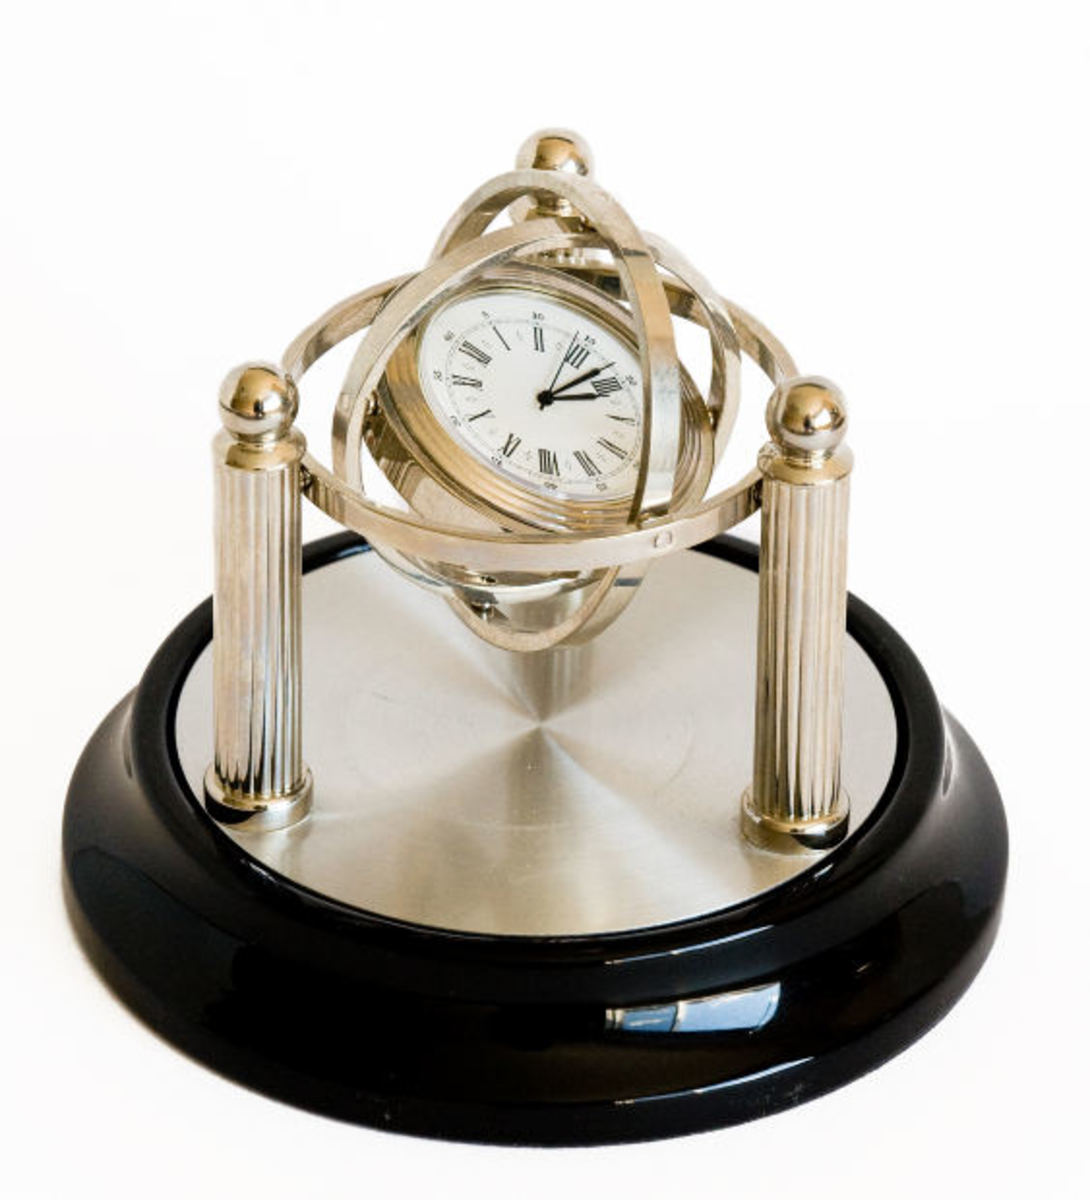 The feeling of running out of time can put you under enormous pressure!